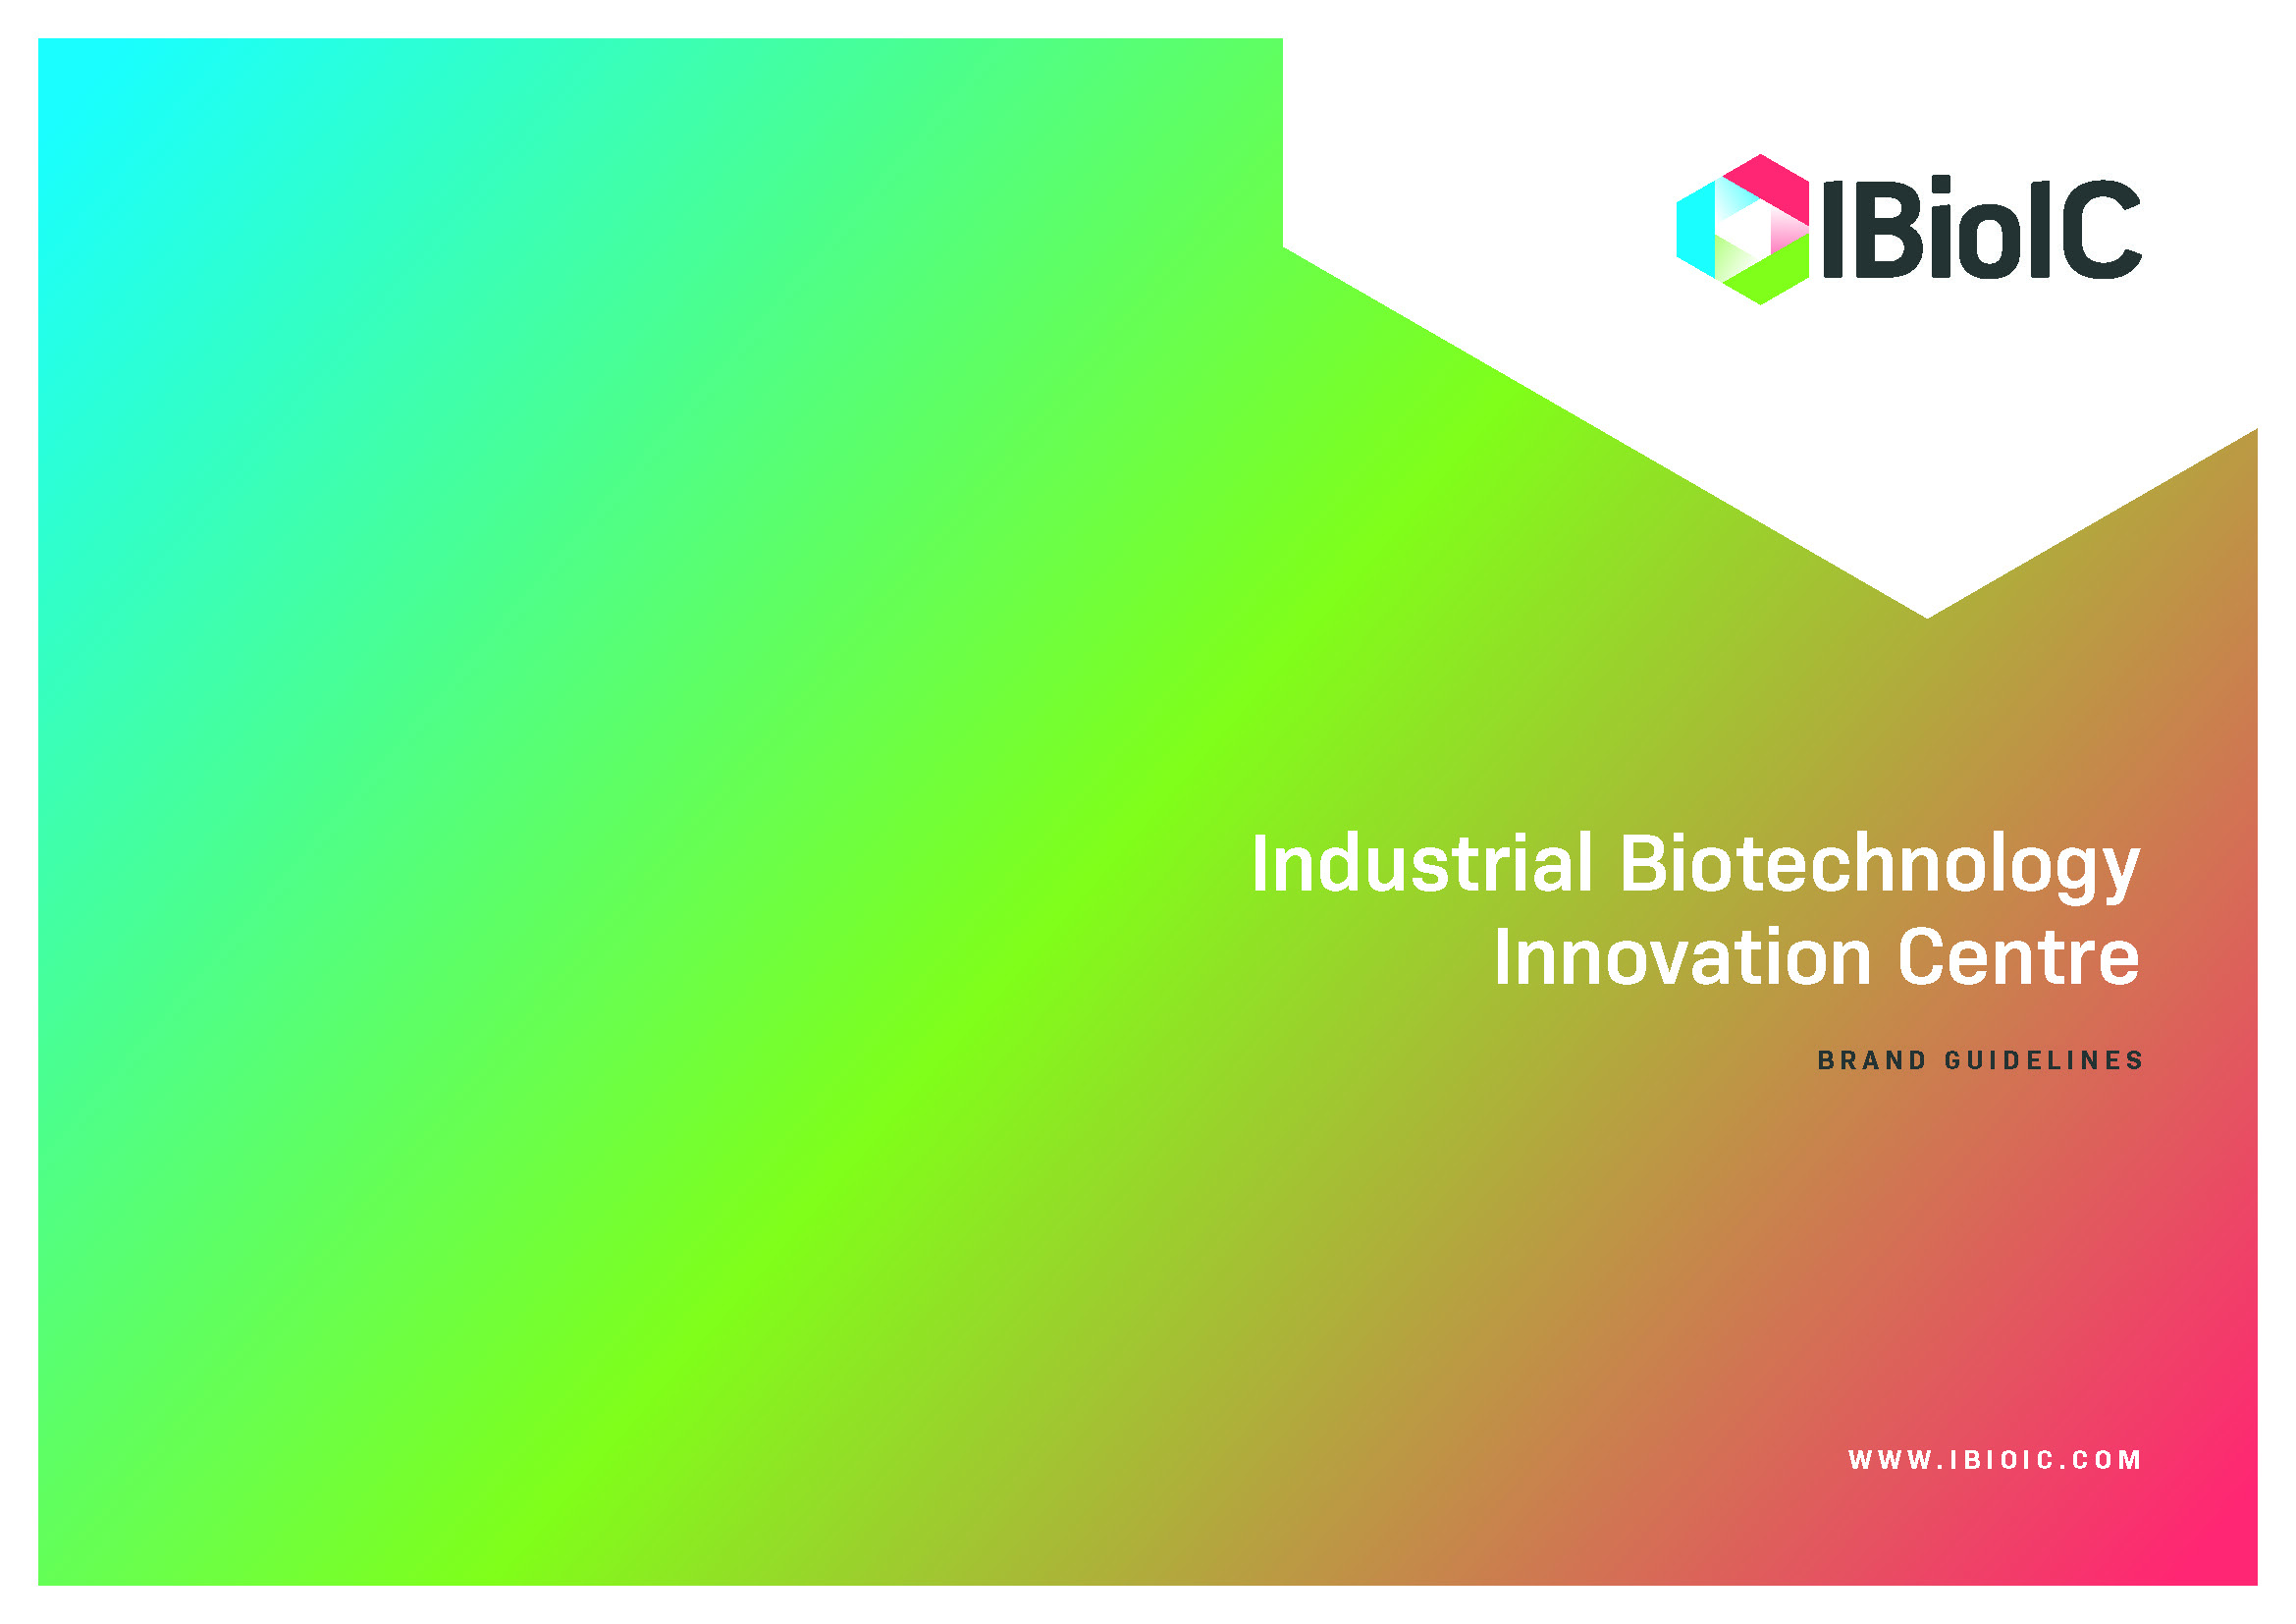 IBioIC_Brand_Guide_Page_01.jpg